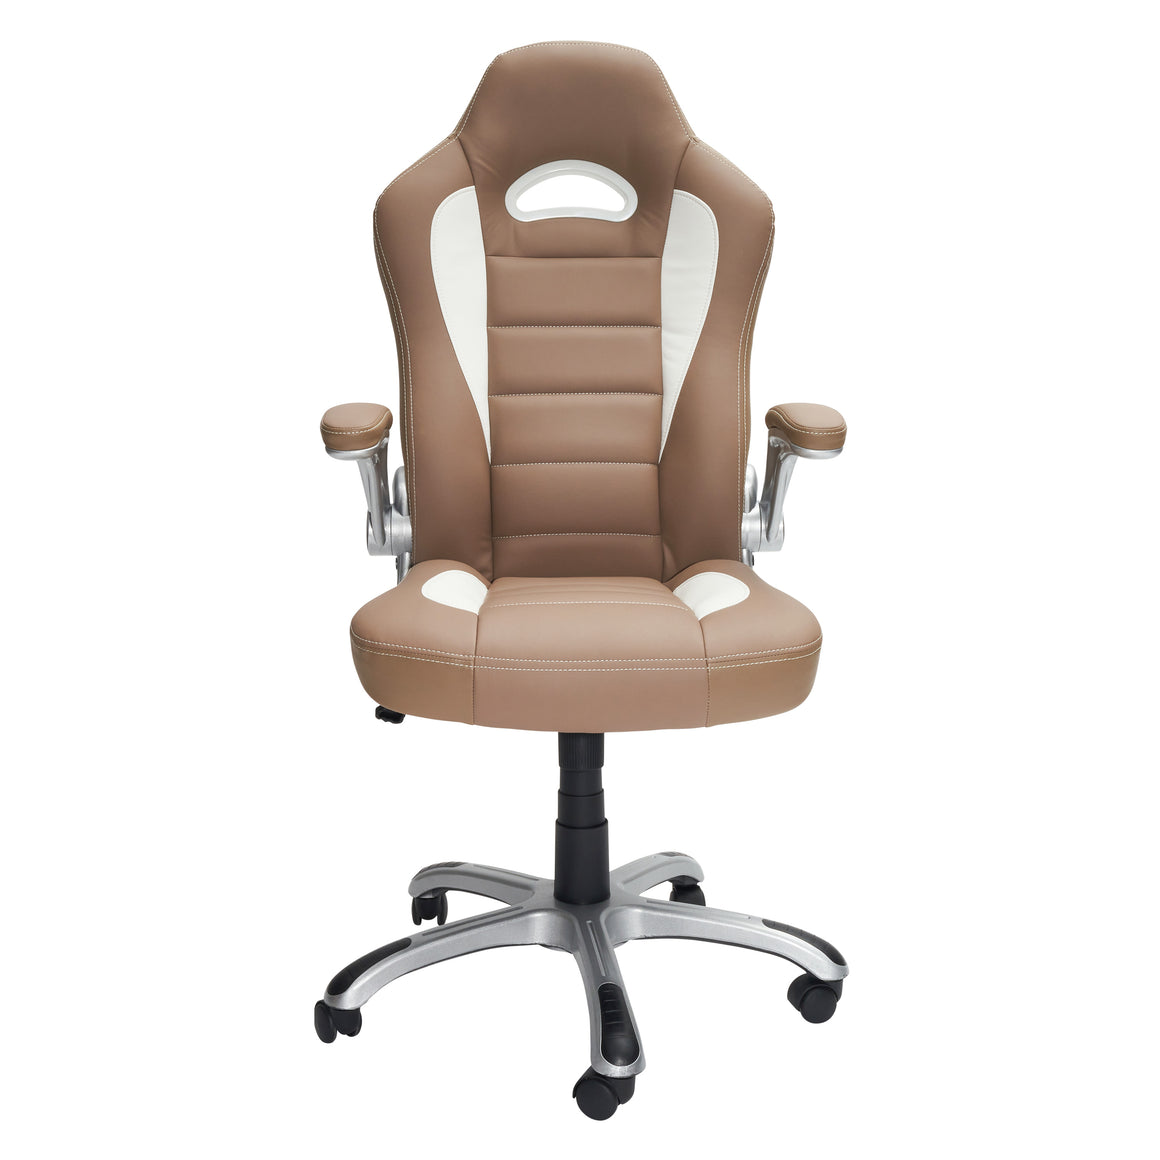 High Back Executive Sport Race Office Chair with Flip-Up Arms